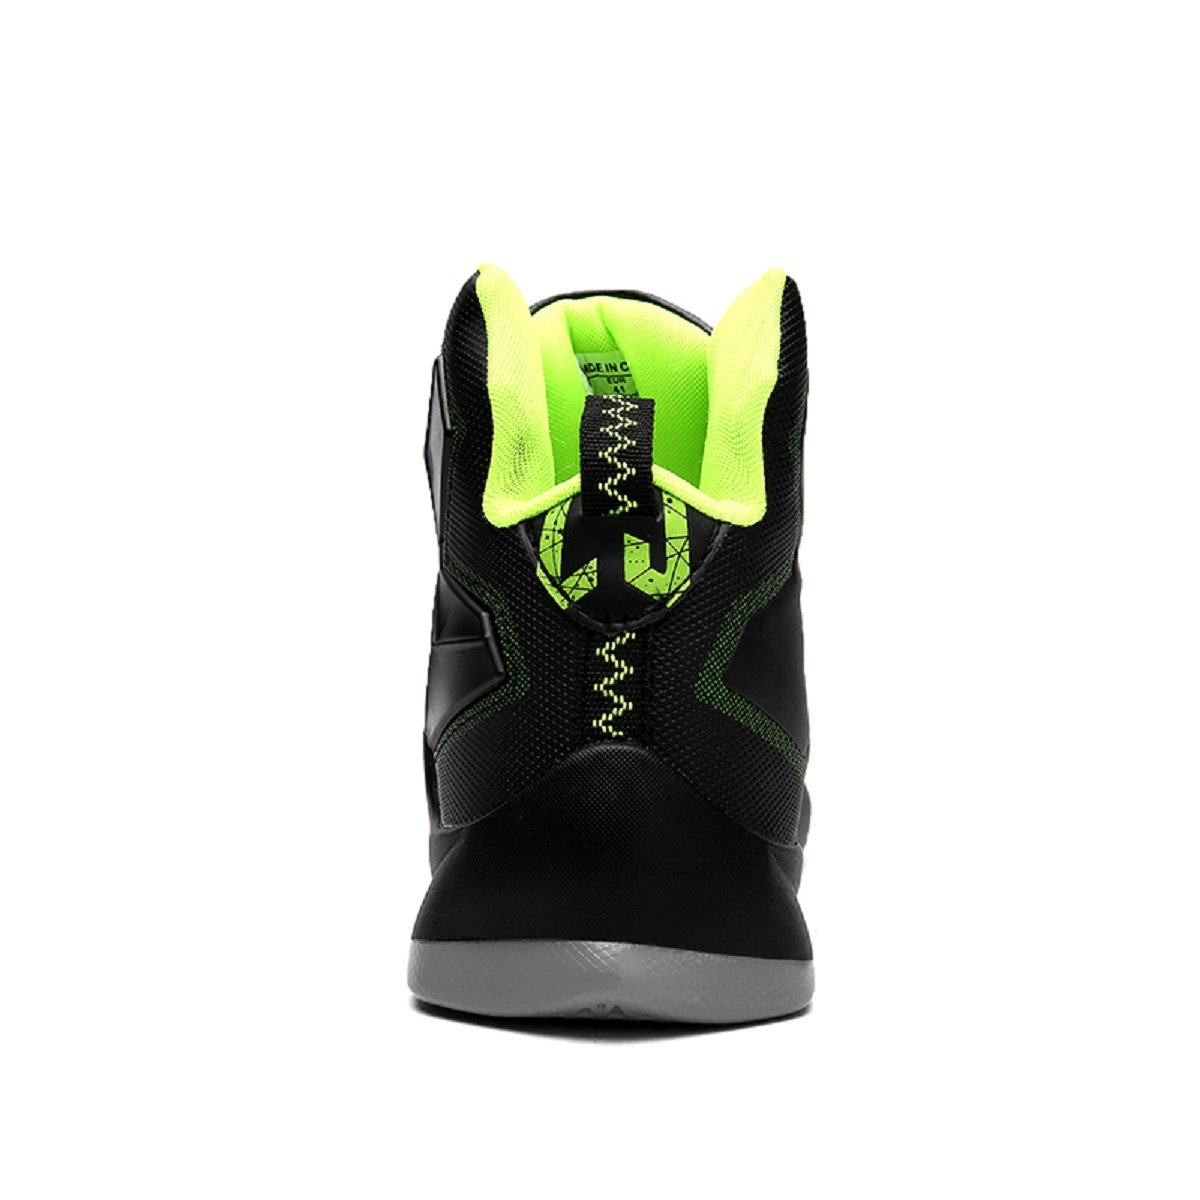 Man/Woman Men's Crazy Crazy Crazy Air Performance Force Allstart Sports Shoe Trail Running Casual Ankle-High Breathable Mid Basketball Shoes Sneaker for Boy fashion First batch of customers Very good classification VH9486 fa99fc